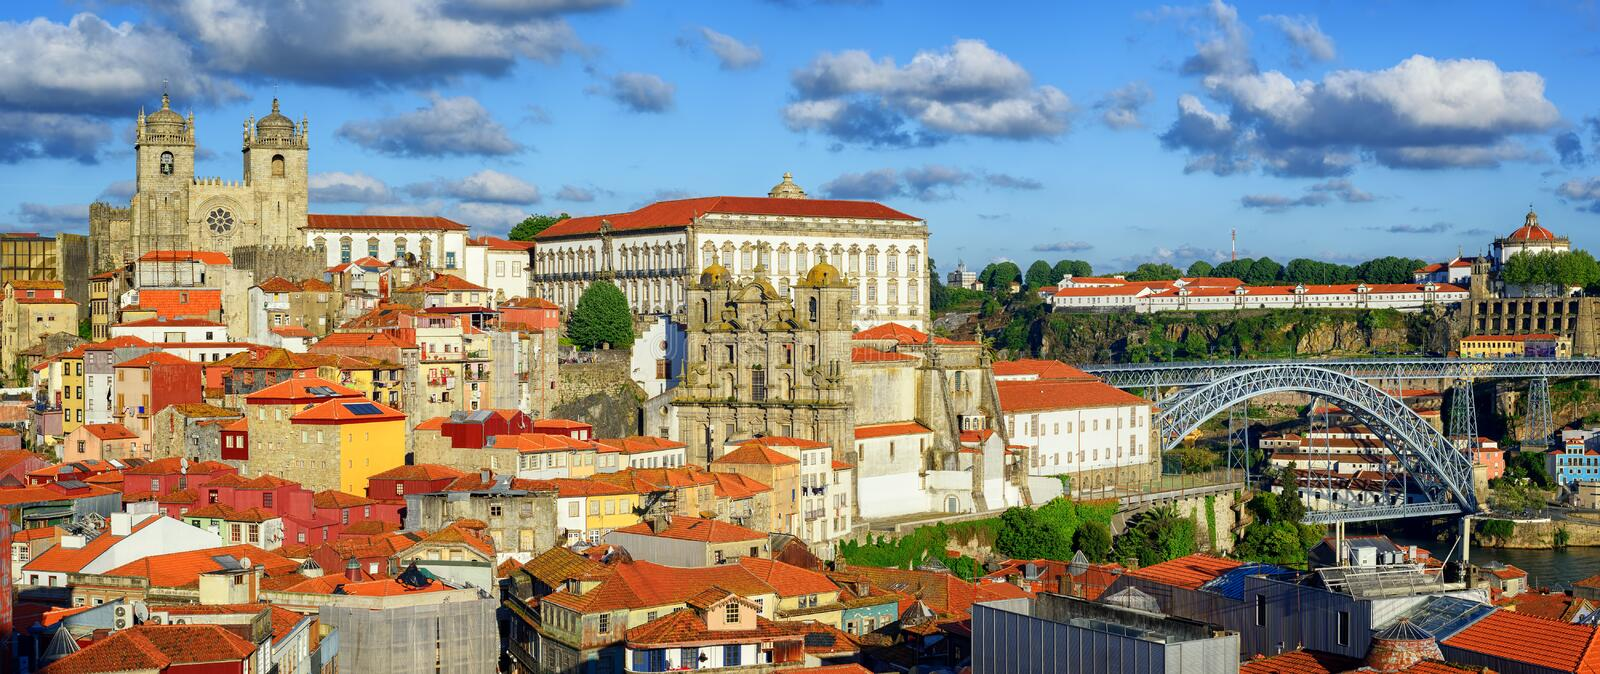 Panoramic view over the old town of Porto, Portugal royalty free stock photo